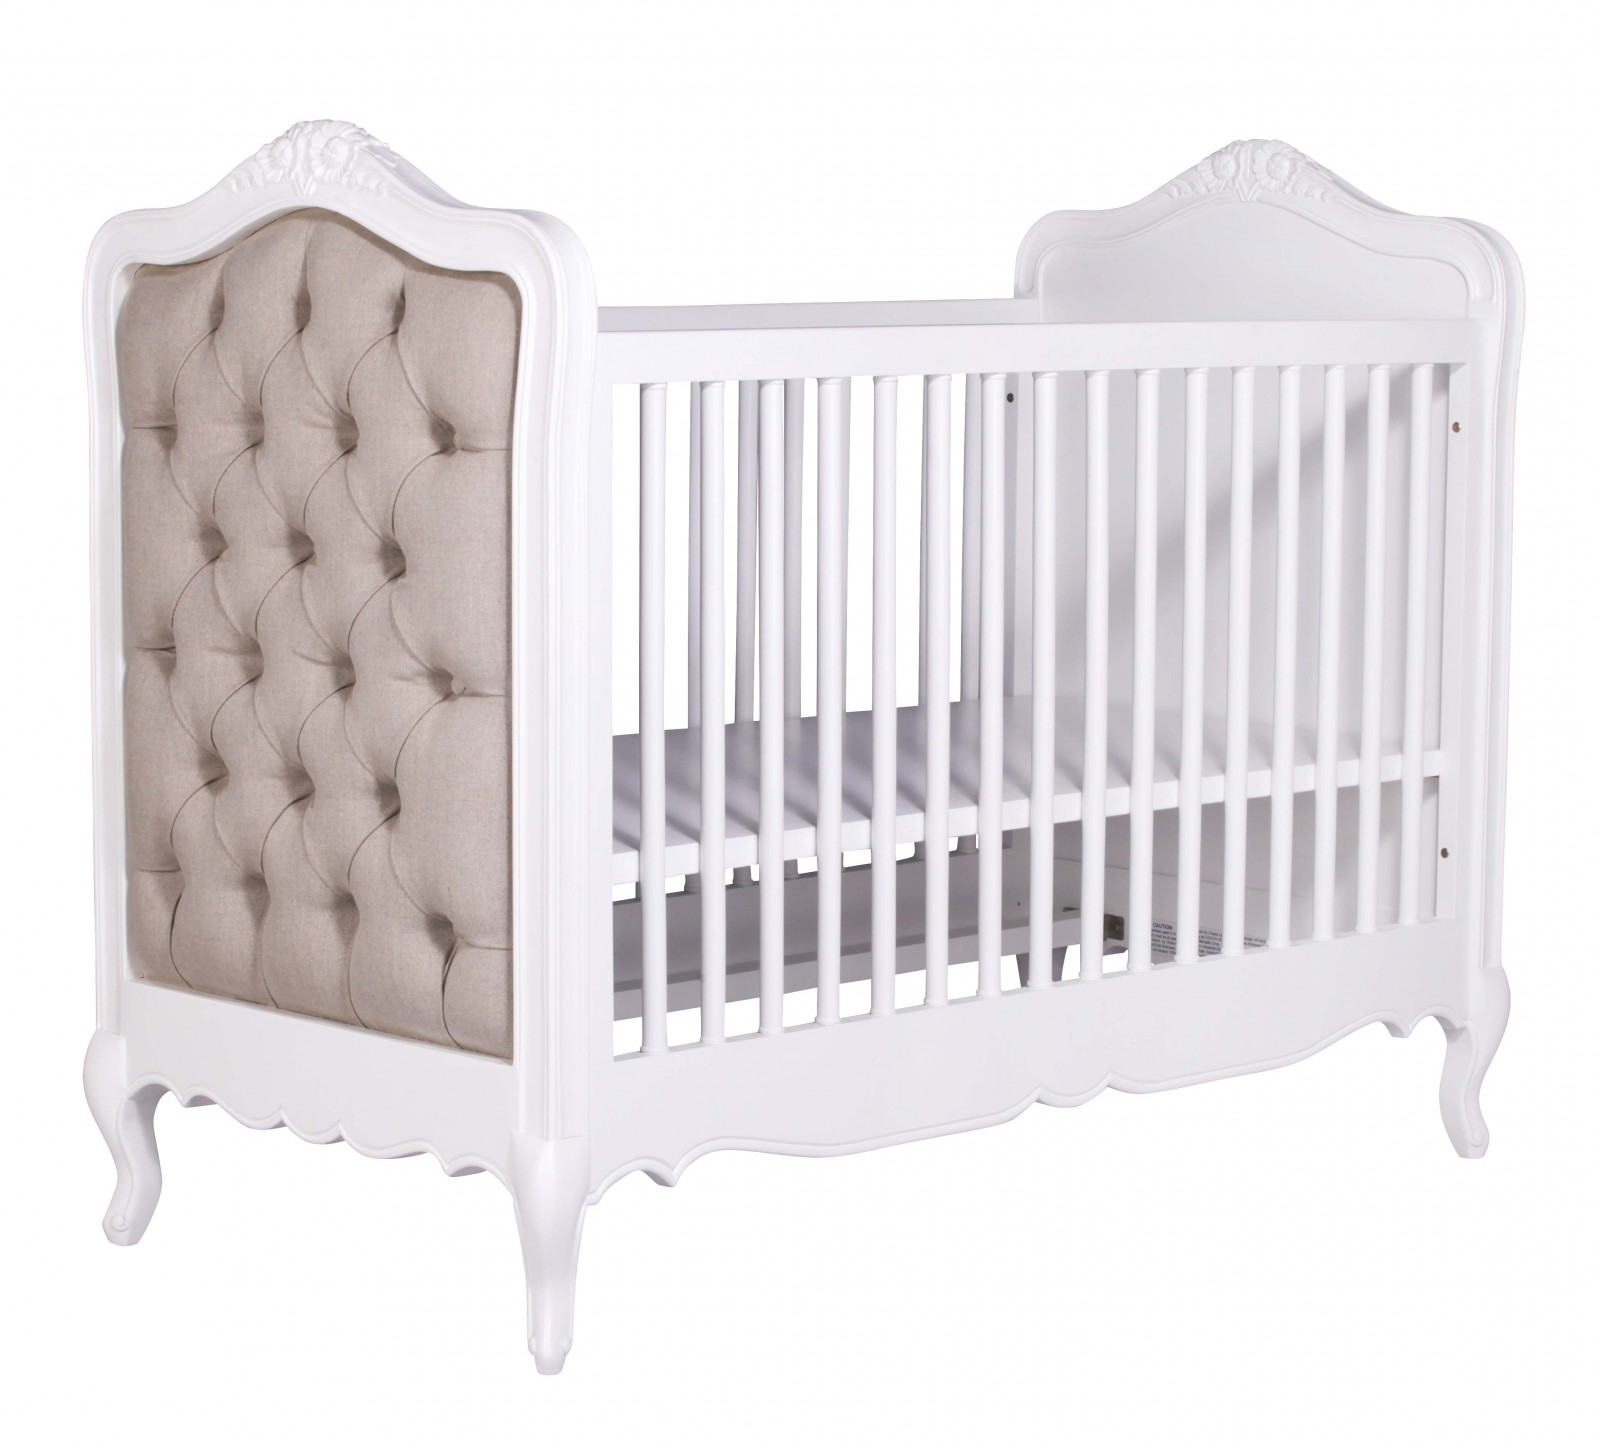 French White Upholstered Buttoned Cot Bed Furniture La Maison Chic Luxury Interiors